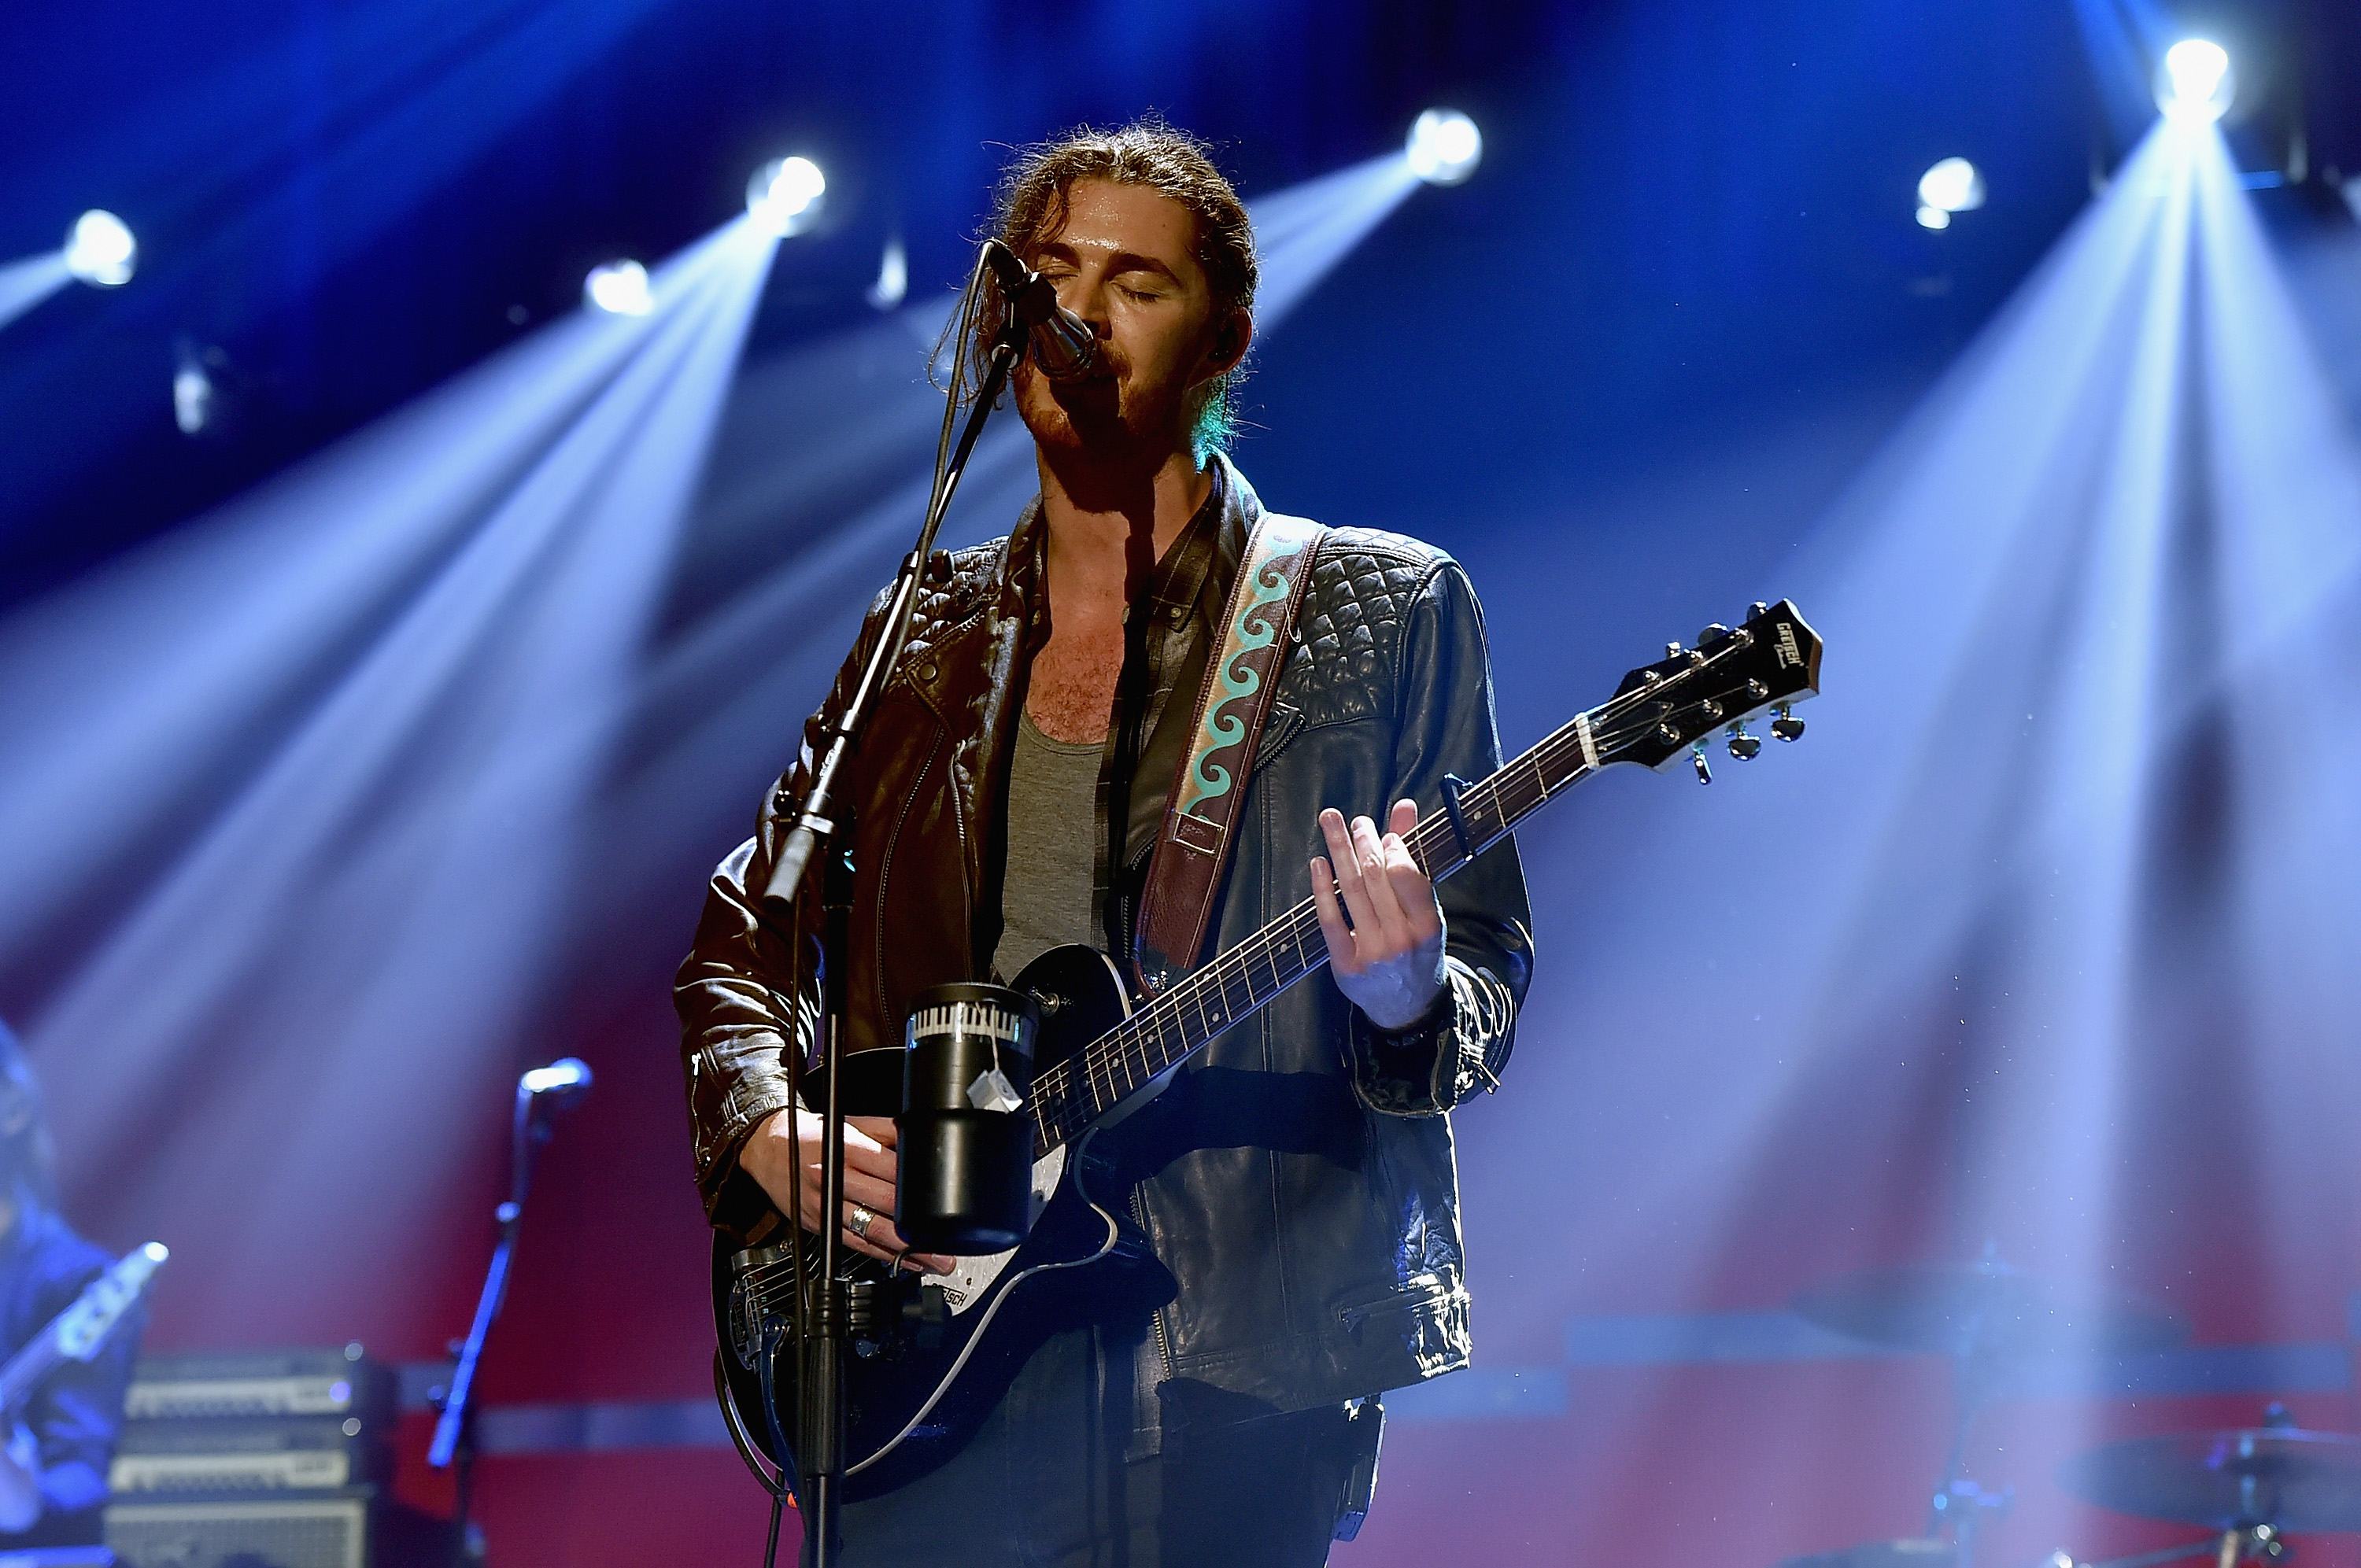 Hozier performs onstage at the 2015 iHeartRadio Music Festival at MGM Grand Garden Arena on September 19, 2015 in Las Vegas, Nevada.